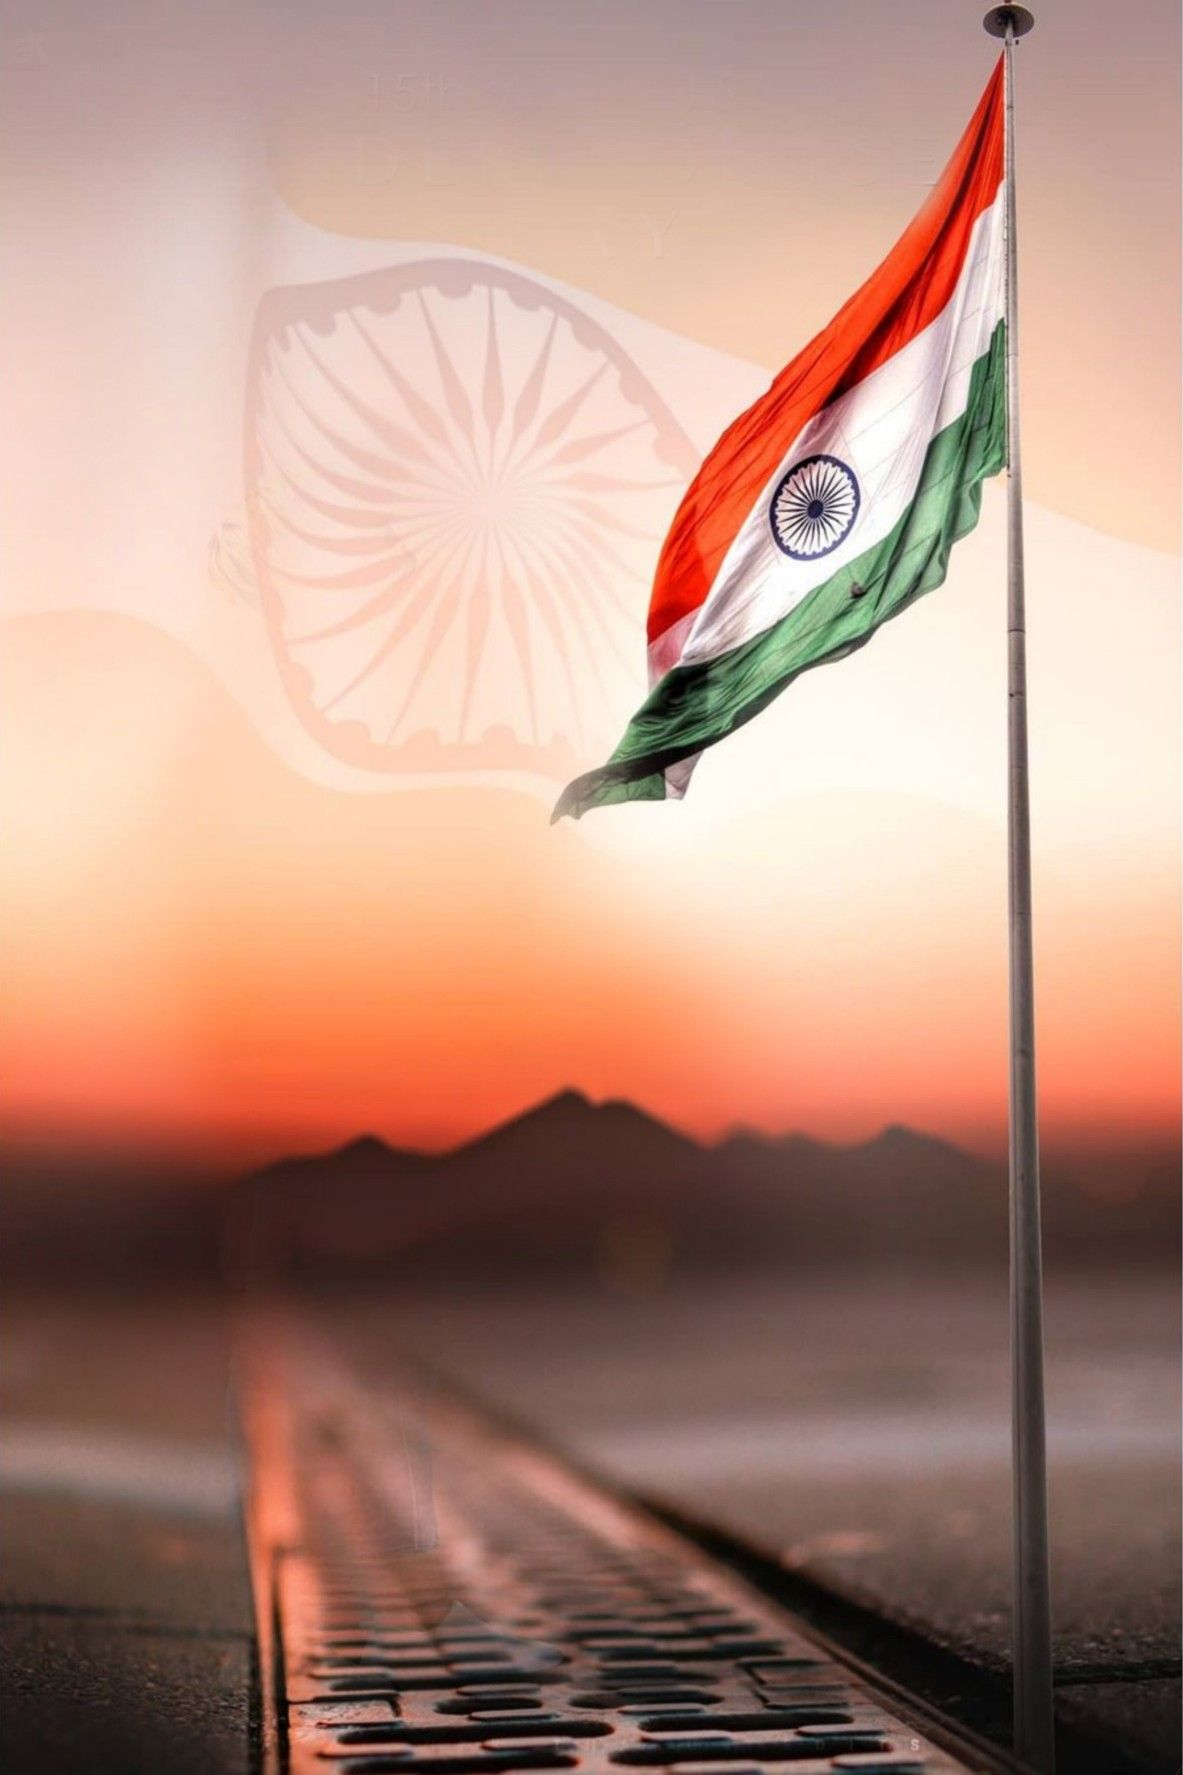 26 January Background Download Hd In 2021 Republic Day Photos Editing Background Best Background Images Indian flag pic 26 january 2021